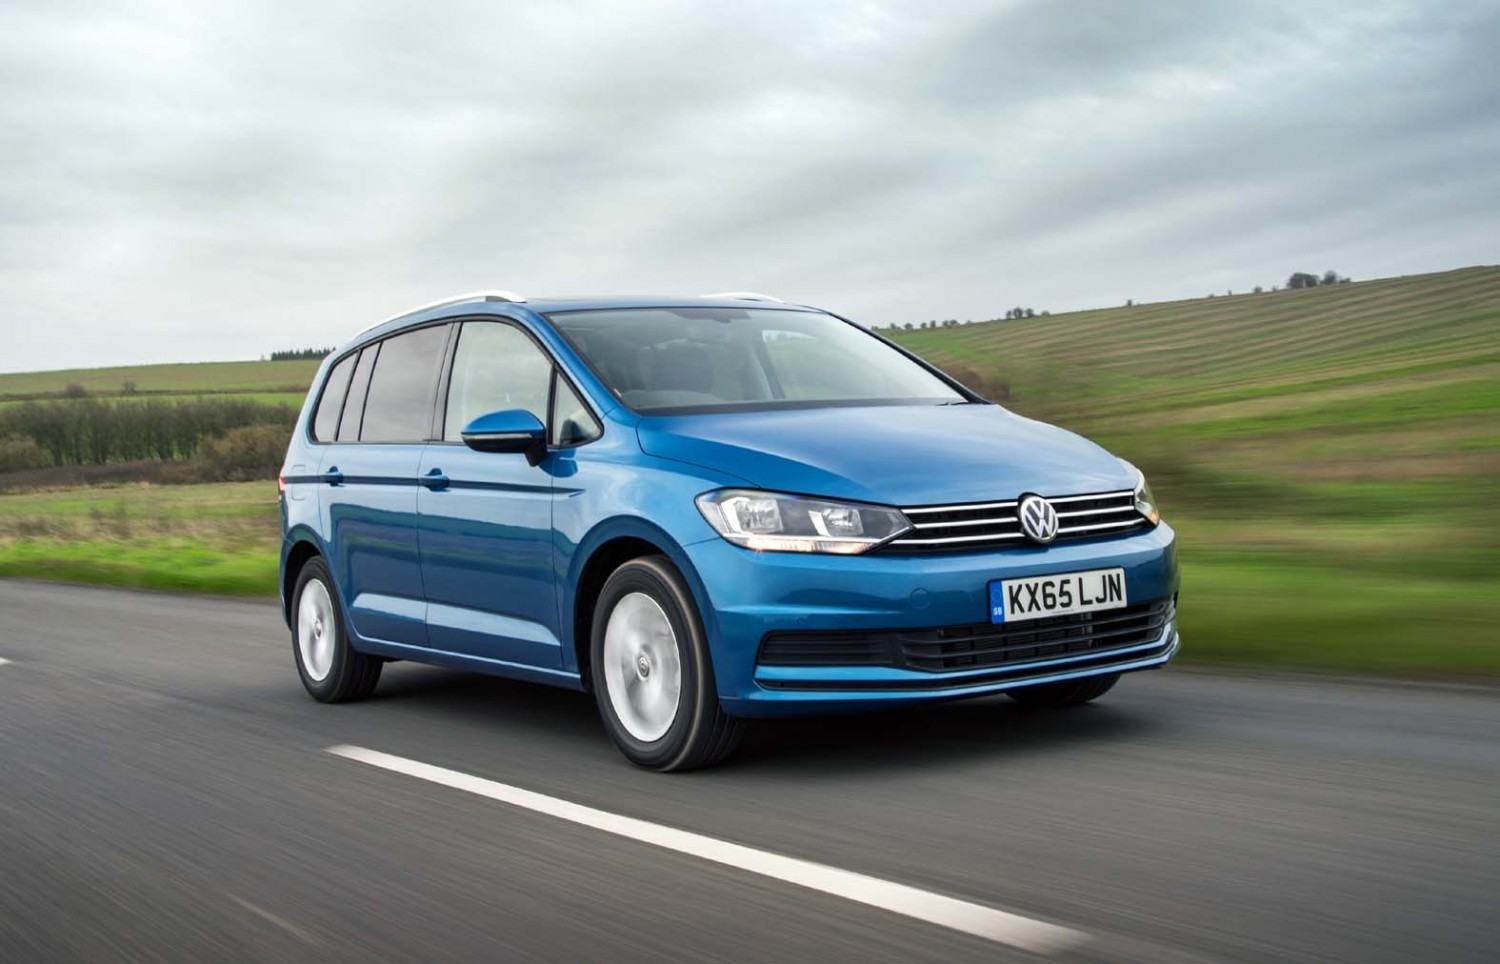 volkswagen touran se family 2 0 tdi dsg eurekar. Black Bedroom Furniture Sets. Home Design Ideas